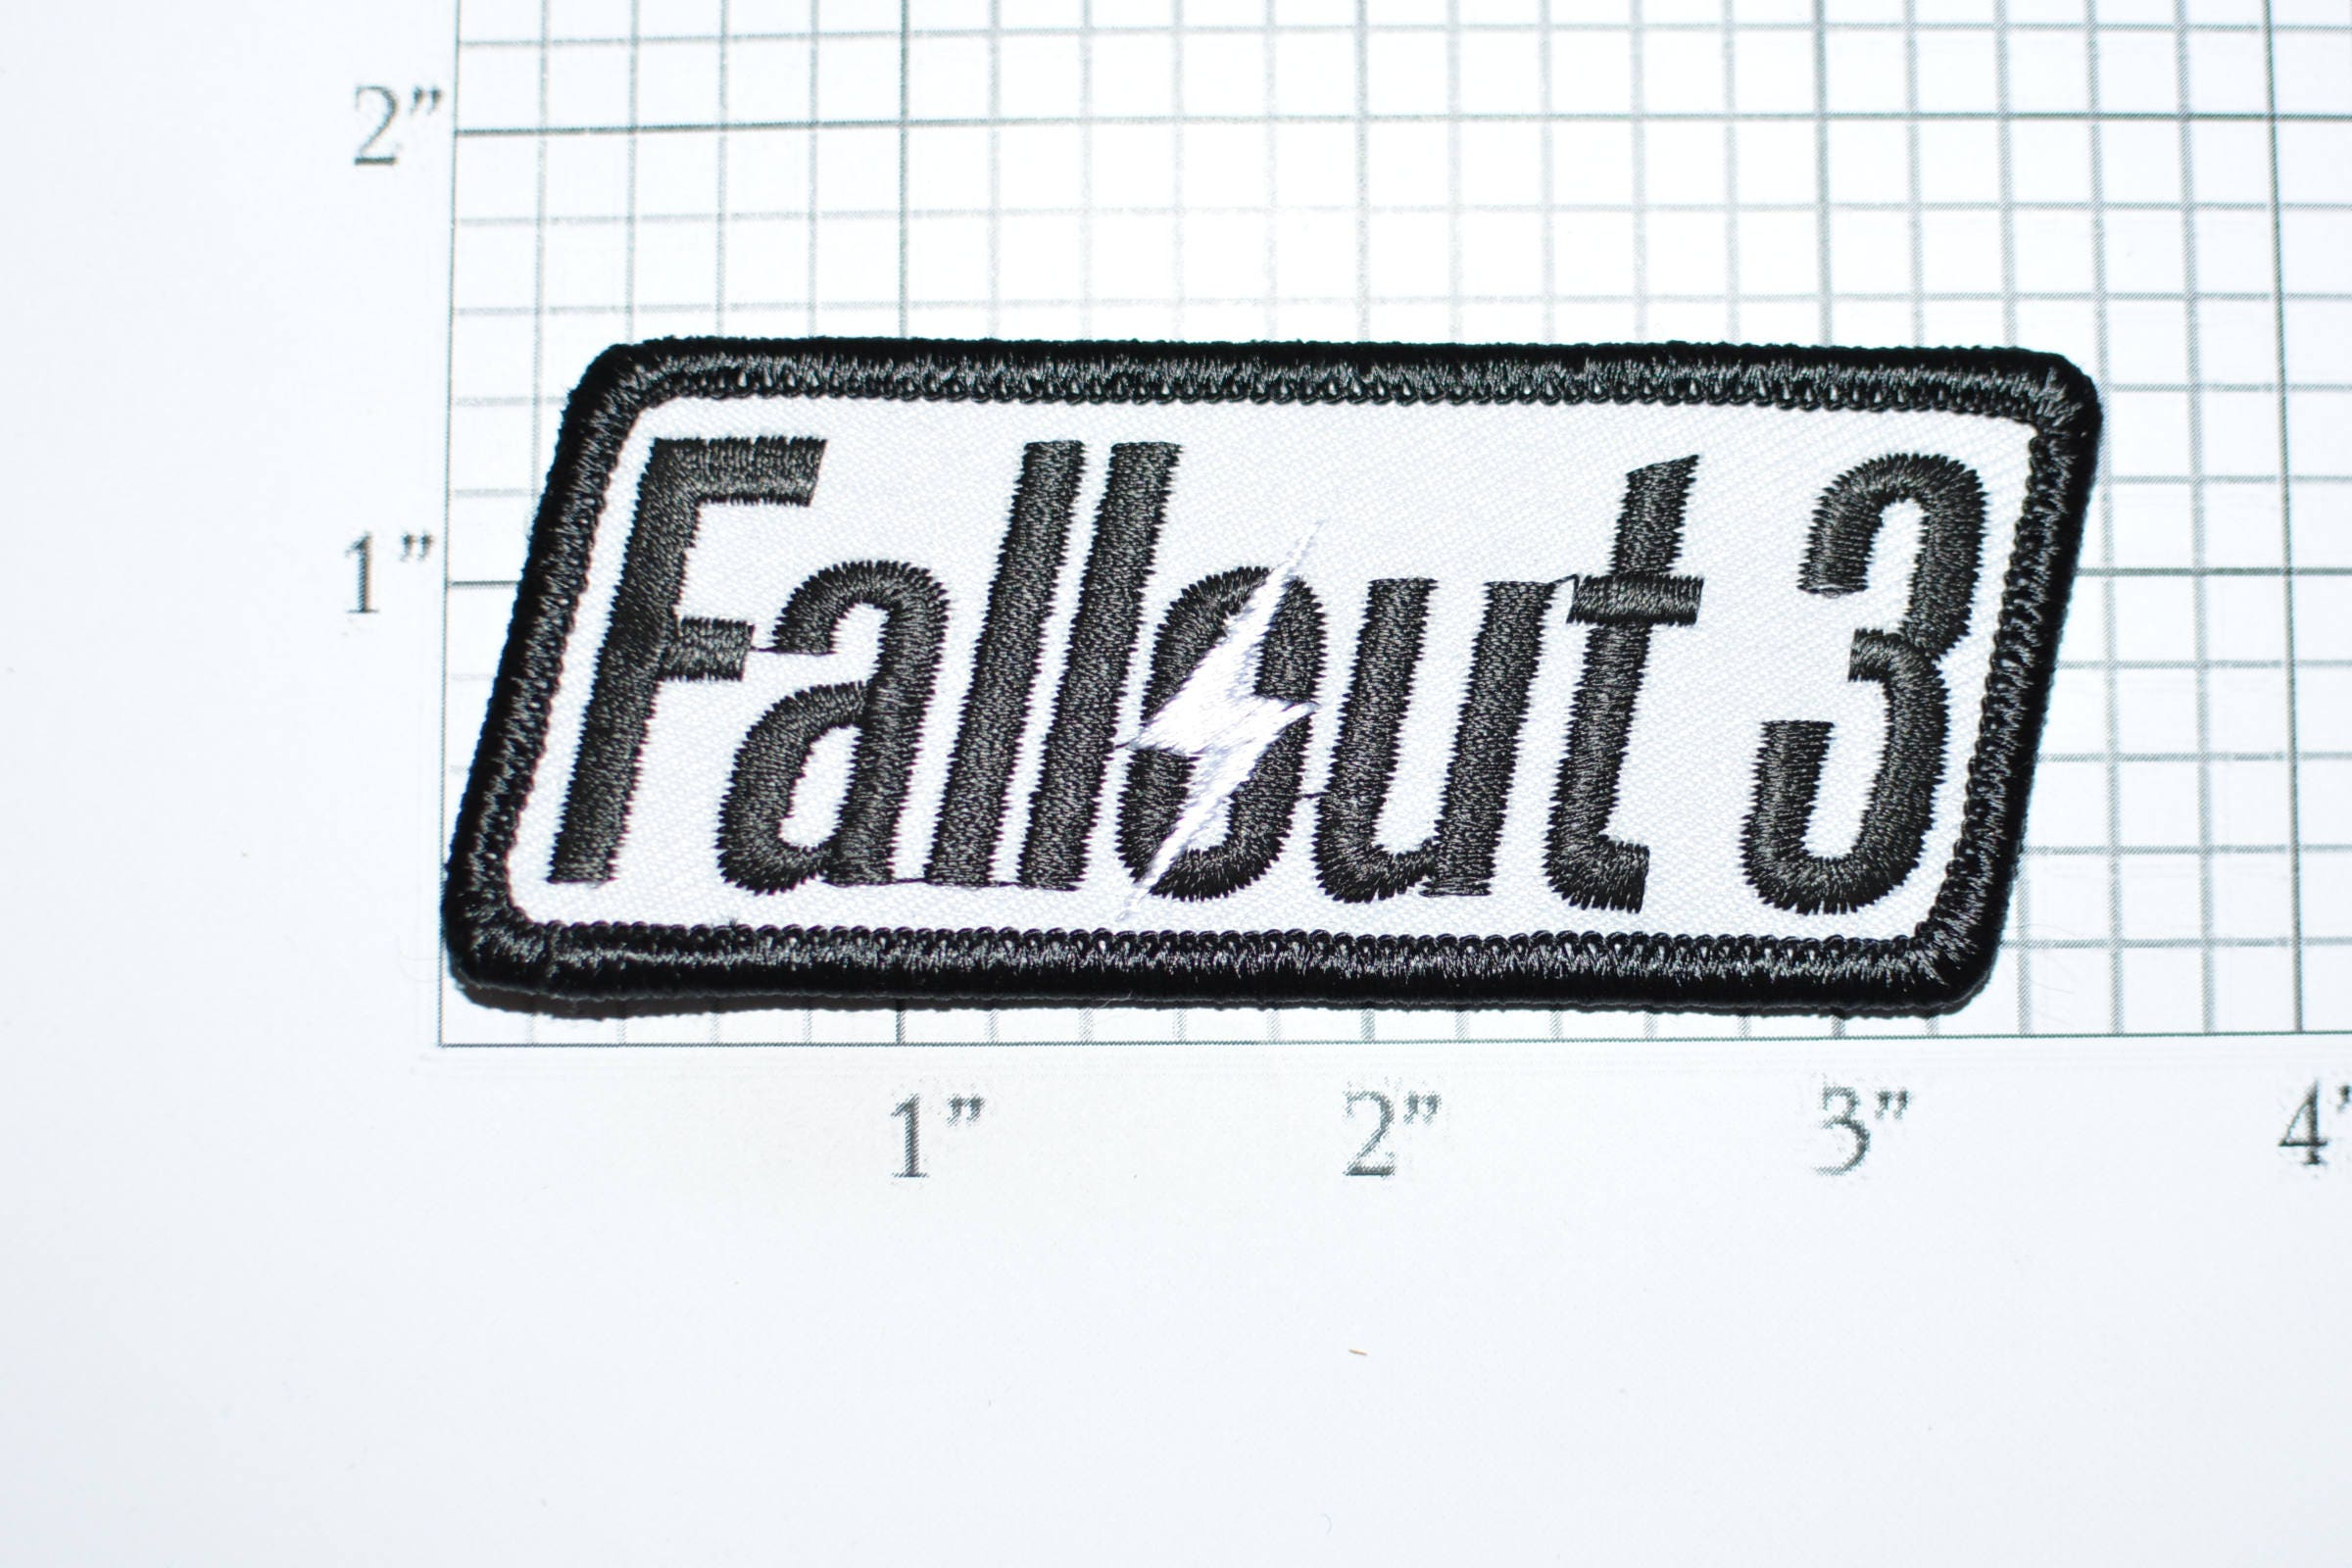 ac18a47a9d91 Fallout 3 Iron-On Embroidered Clothing Patch for Jacket Vest Jean Shirt  Backpack Novelty Badge Gamer Videogame Role Play Emblem e33K